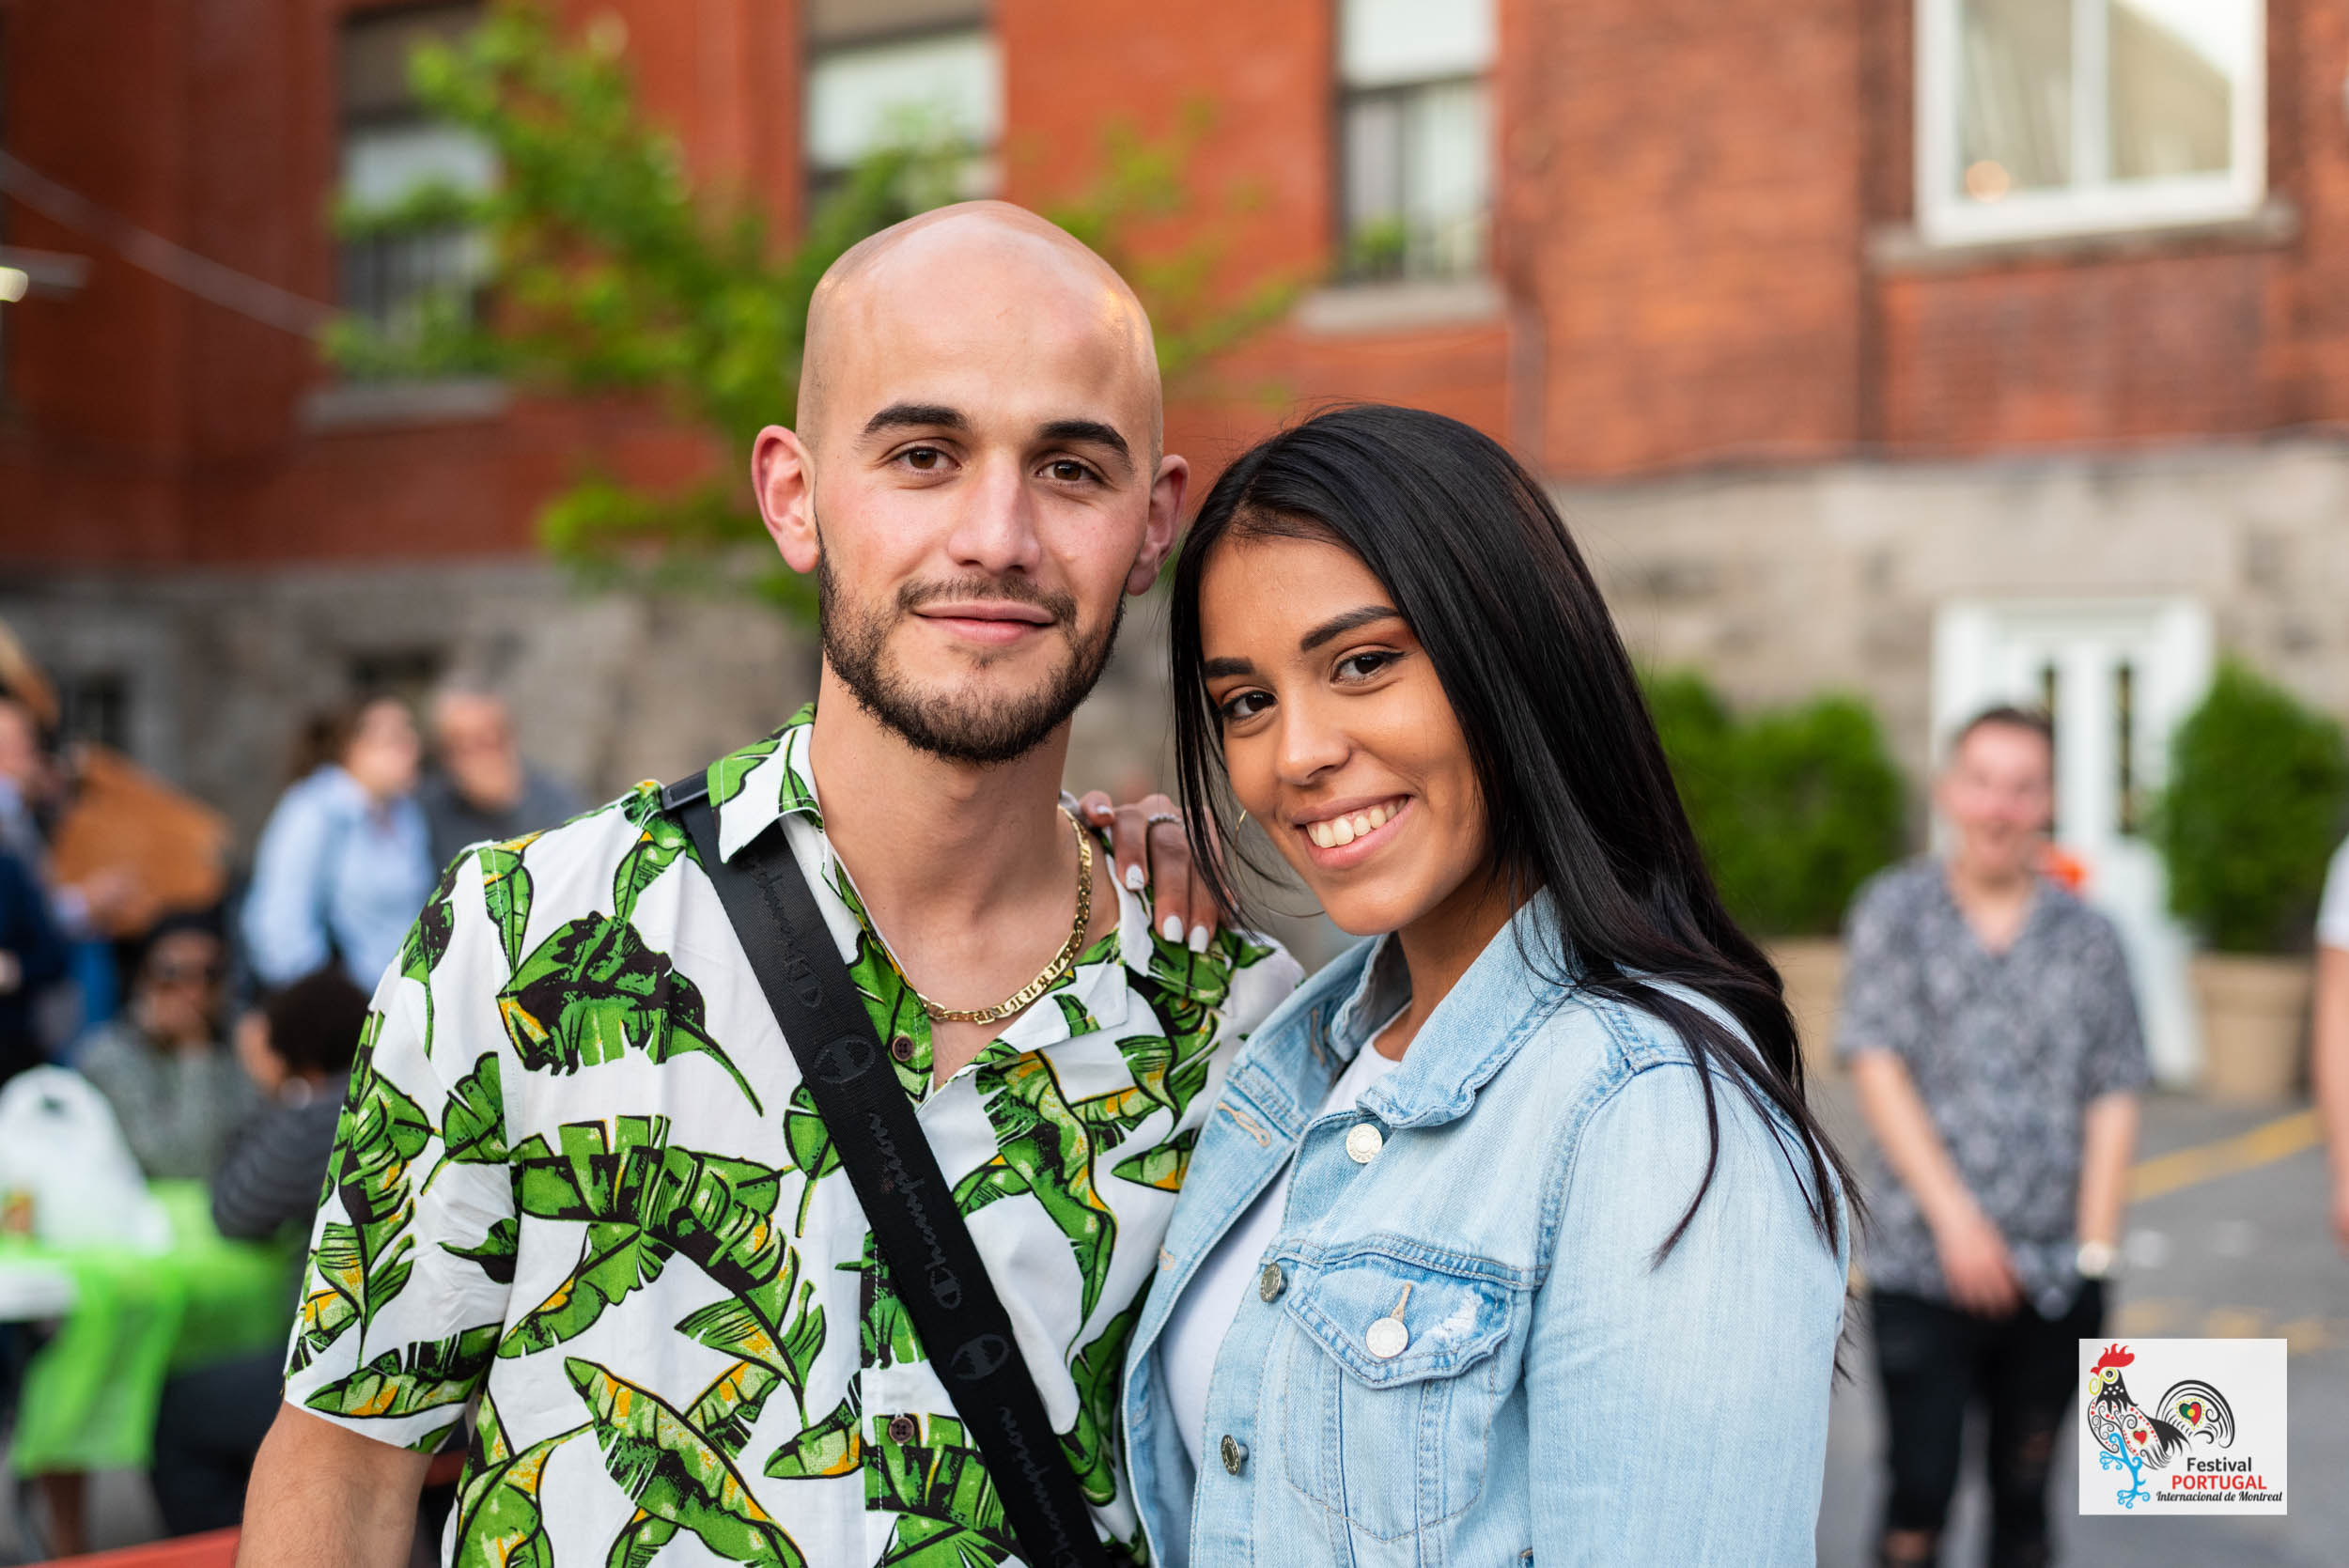 Carlos-Gouveia-Photgrapher-Montreal - Web Resolution - FPIM 2019_-126.jpg